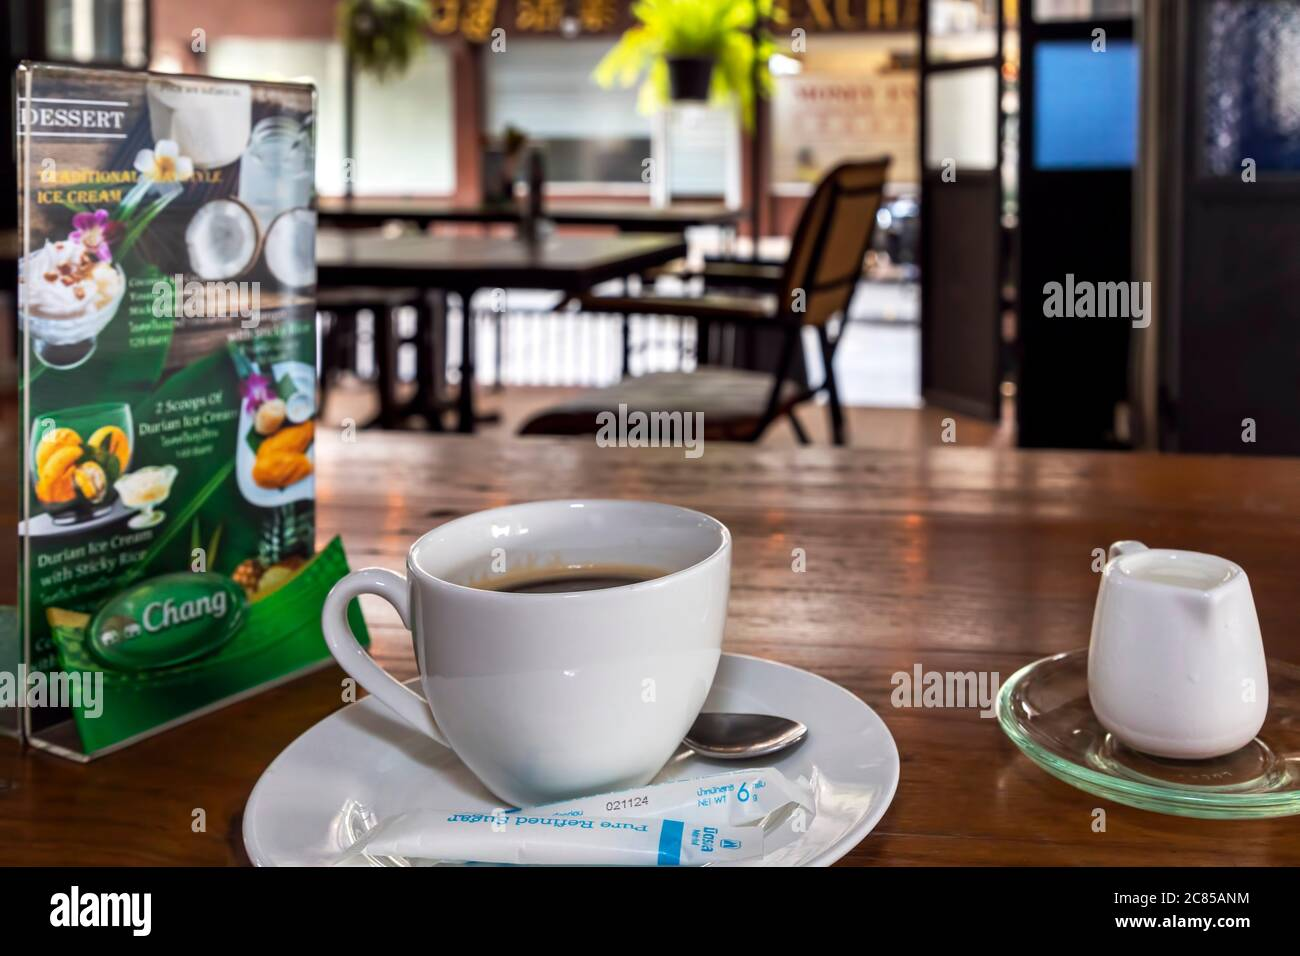 Coffee cup and menu in Thai restaurant during covid 19 pandemic, Bangkok, Thailand Stock Photo